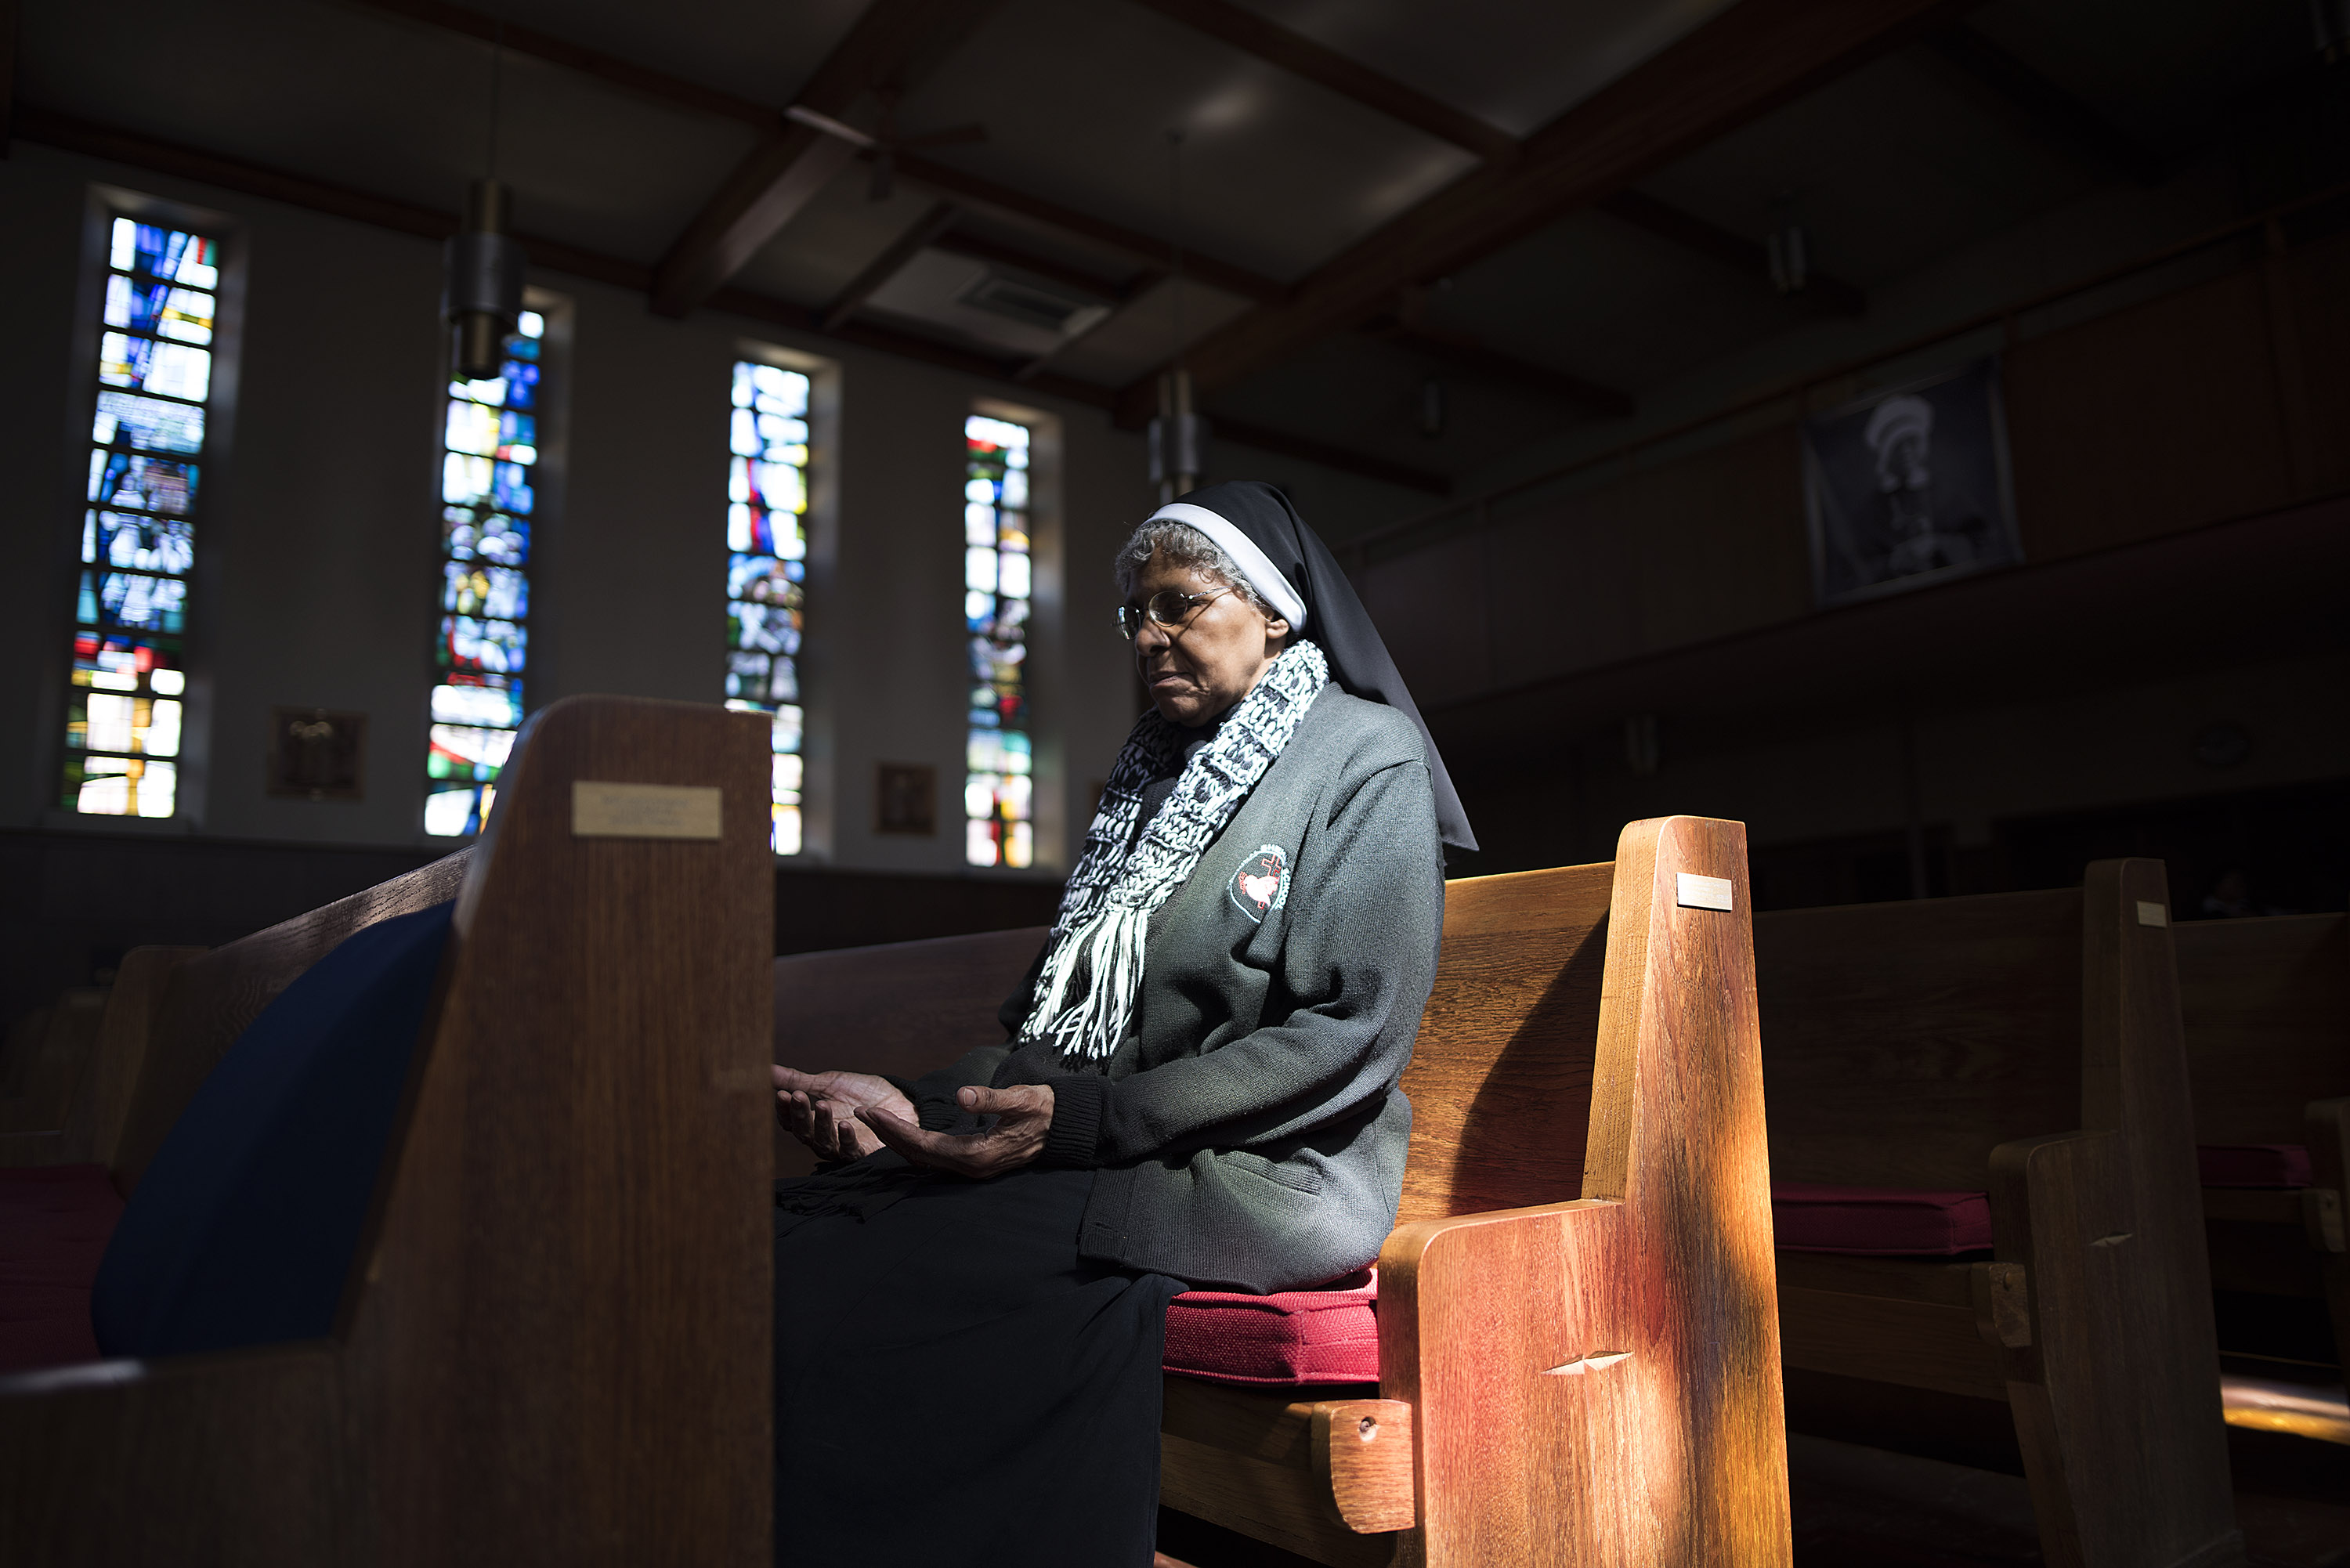 A nun in prayer at the Oblate Sisters Convent in Baltimore, the oldest African-American Roman Catholic sisterhood in the world.